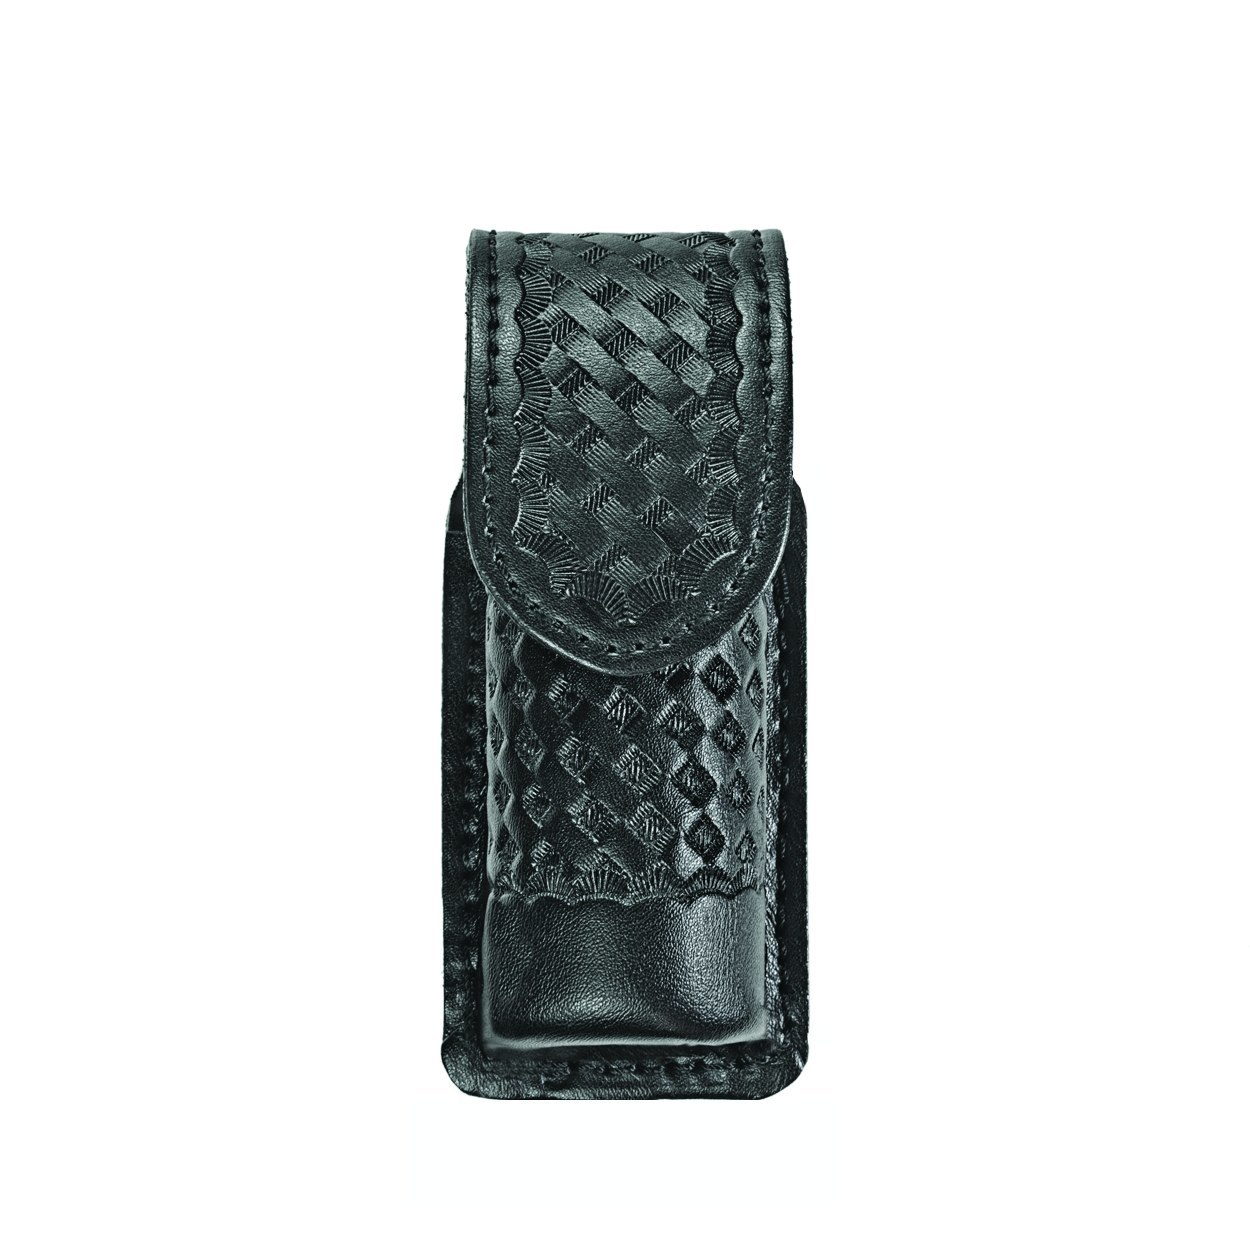 O.C. (Pepper) Spray Case, Small, MK3 (MK2,6), AirTek, BW, Hidden Snap